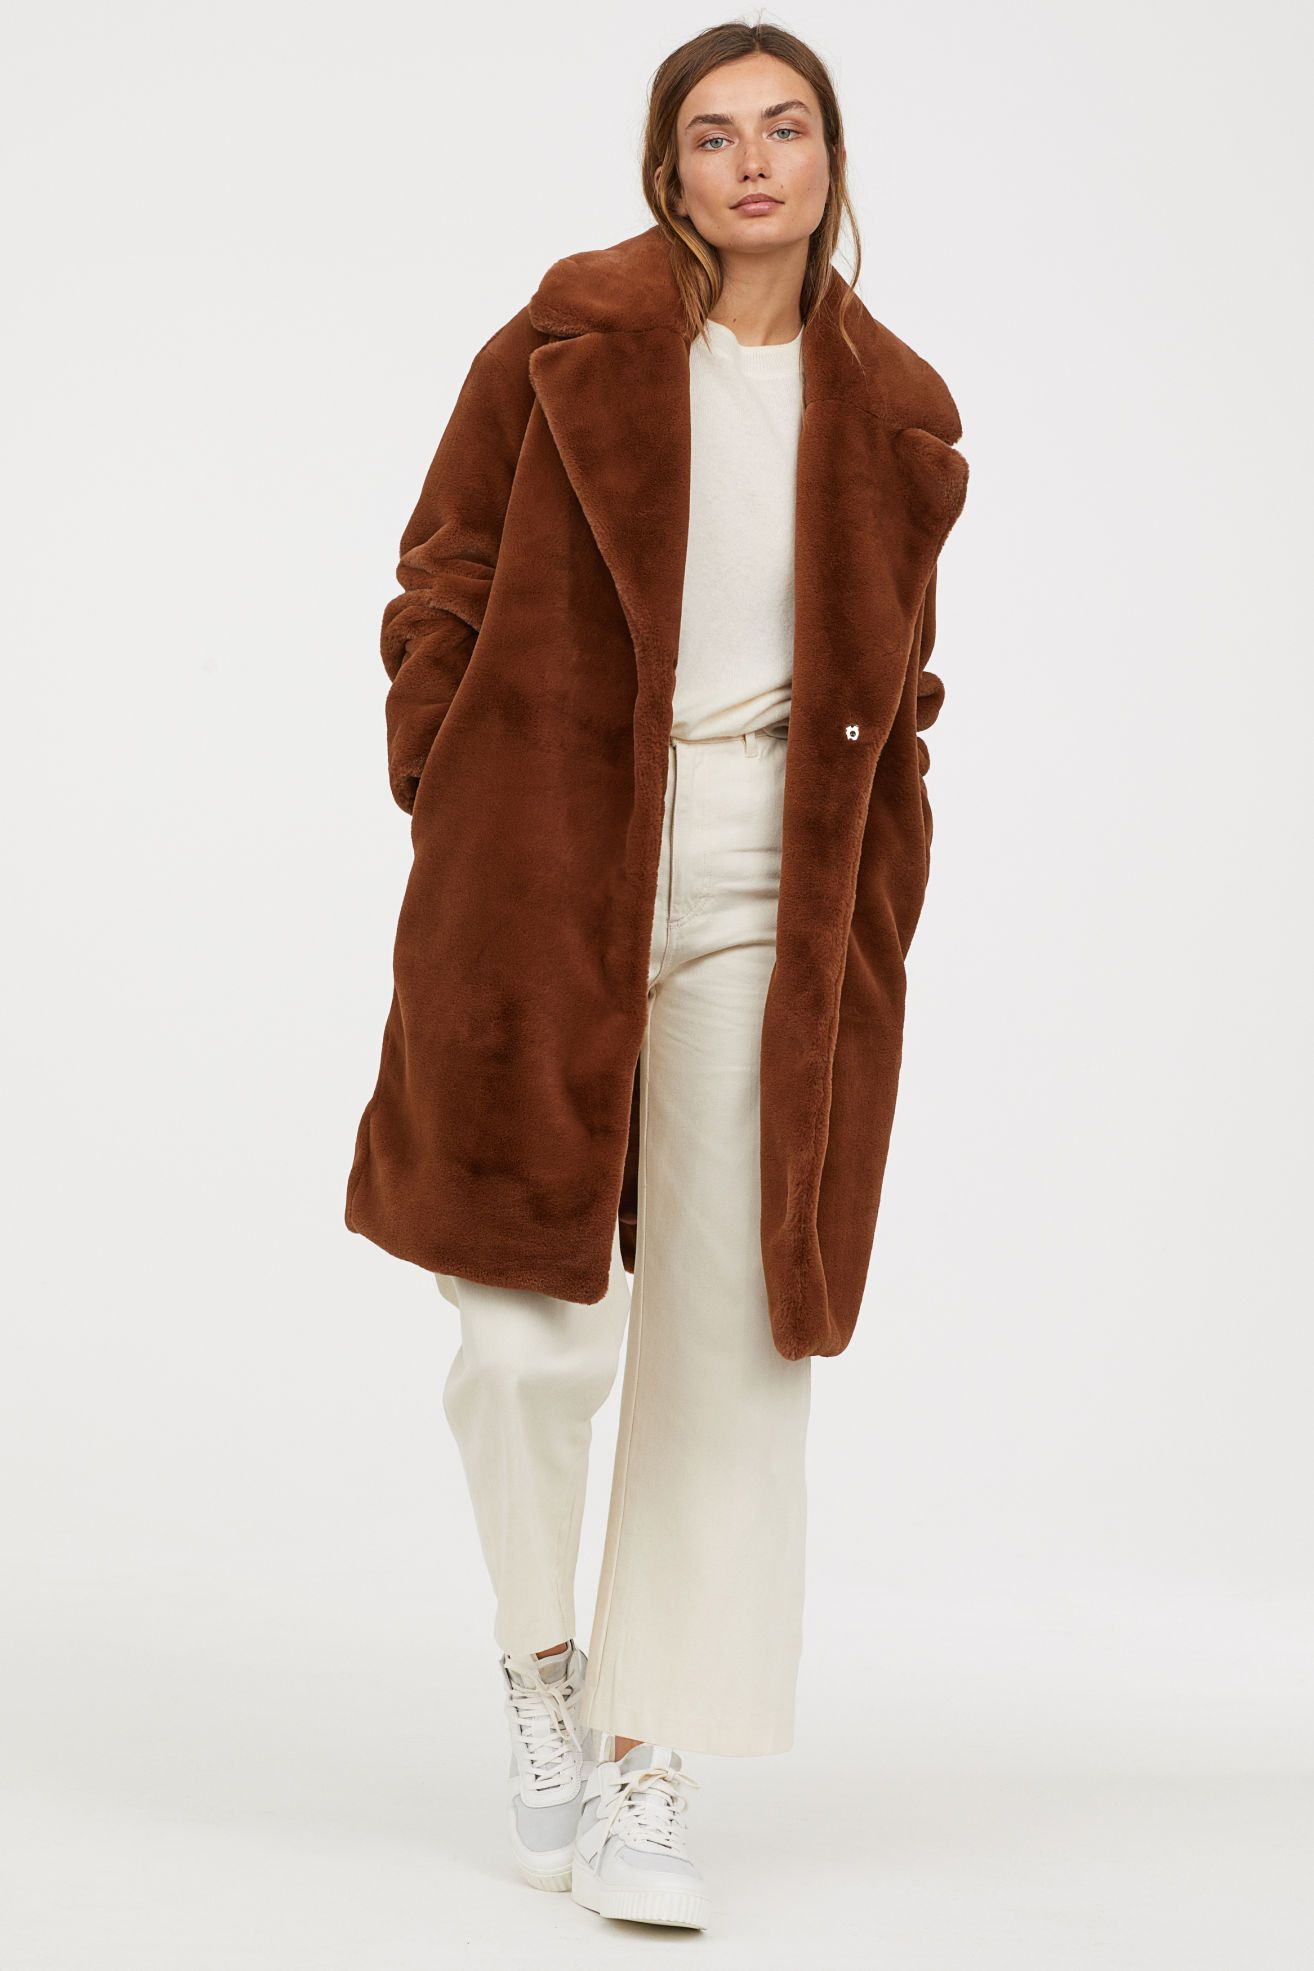 e7f426b038 Faux Fur Coat in 2019 | Things I want to buy: Personal Edition ...